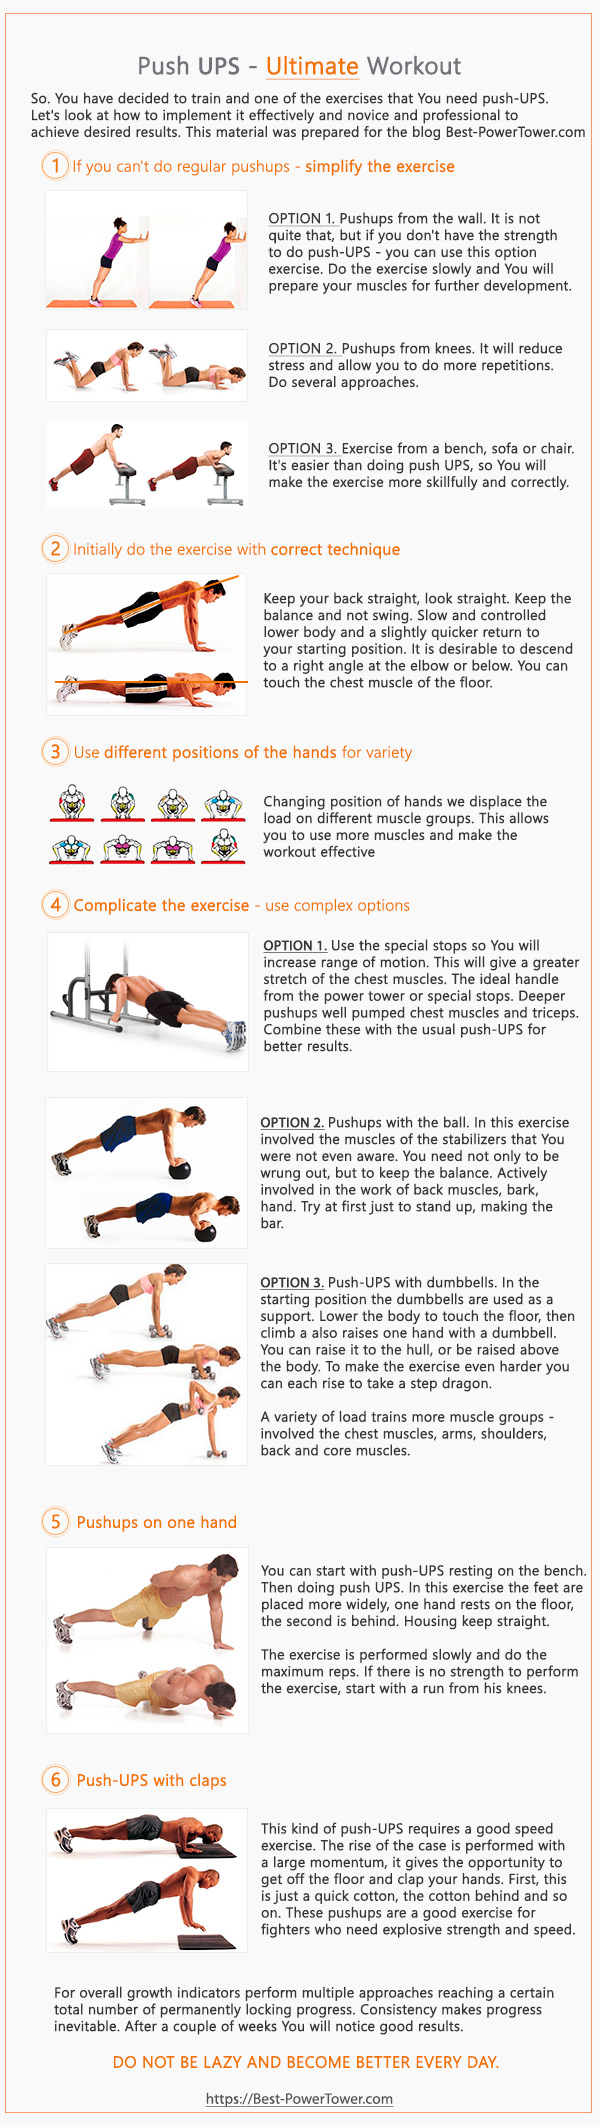 Perfect Pushup Workout Guide Doesn T Have To Be Hard Push Up Workout Perfect Pushup Workout Guide